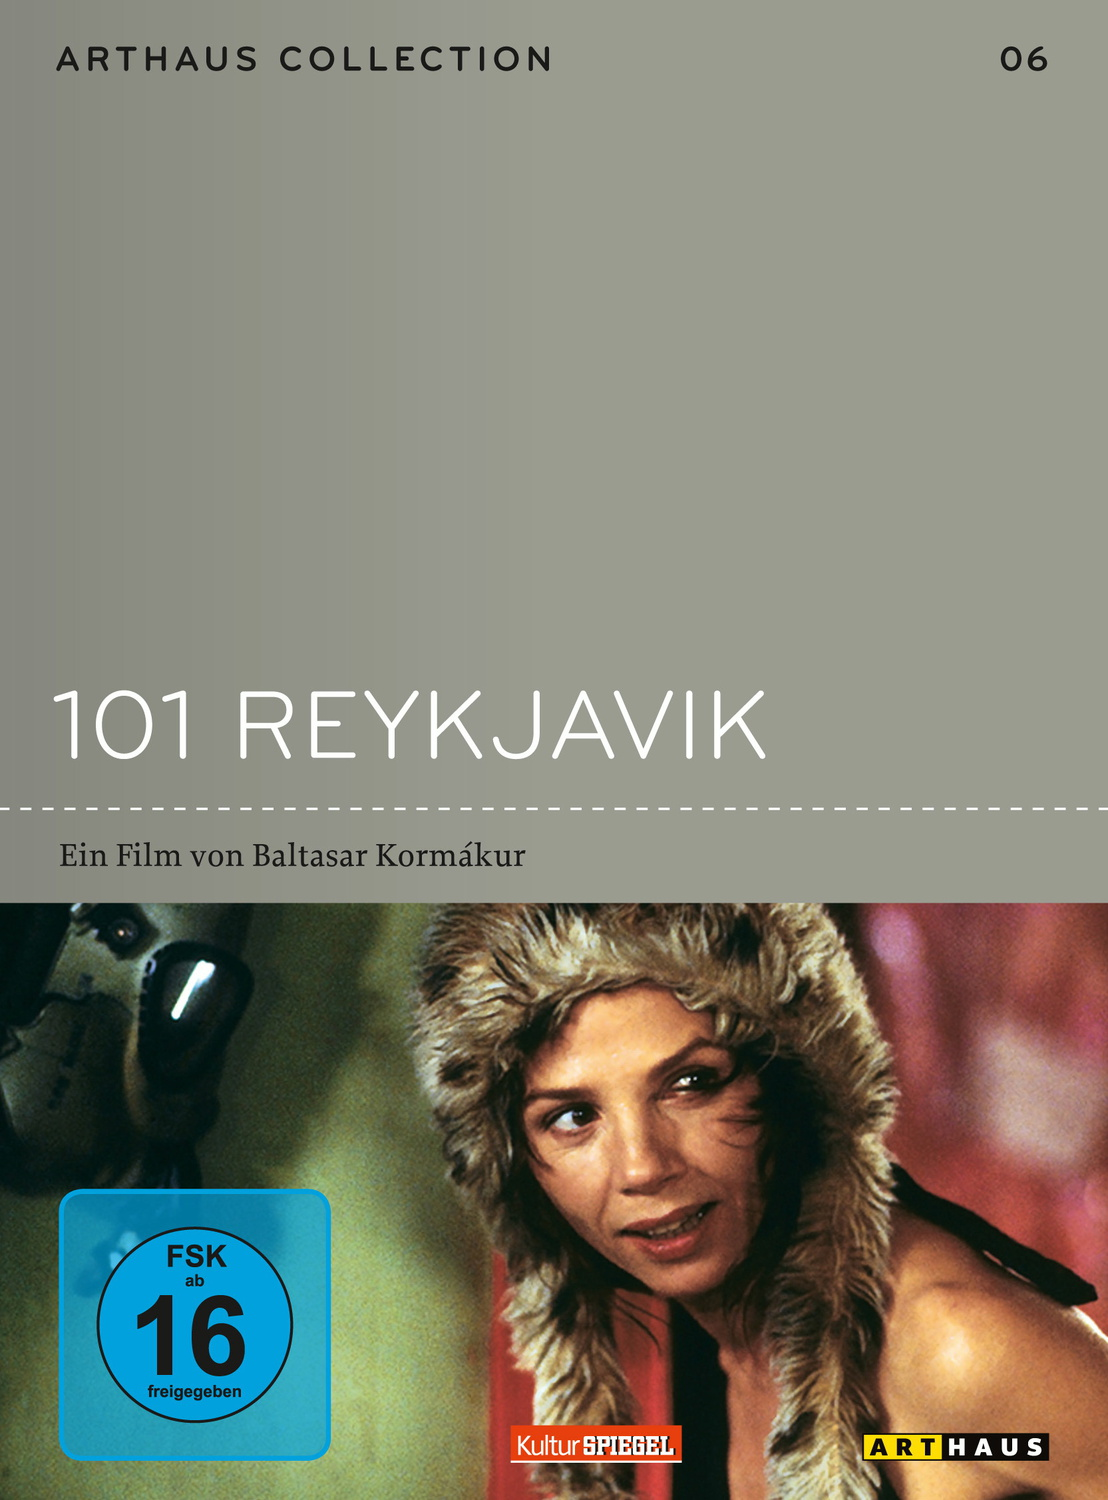 101 Reykjavik - Arthaus Collection